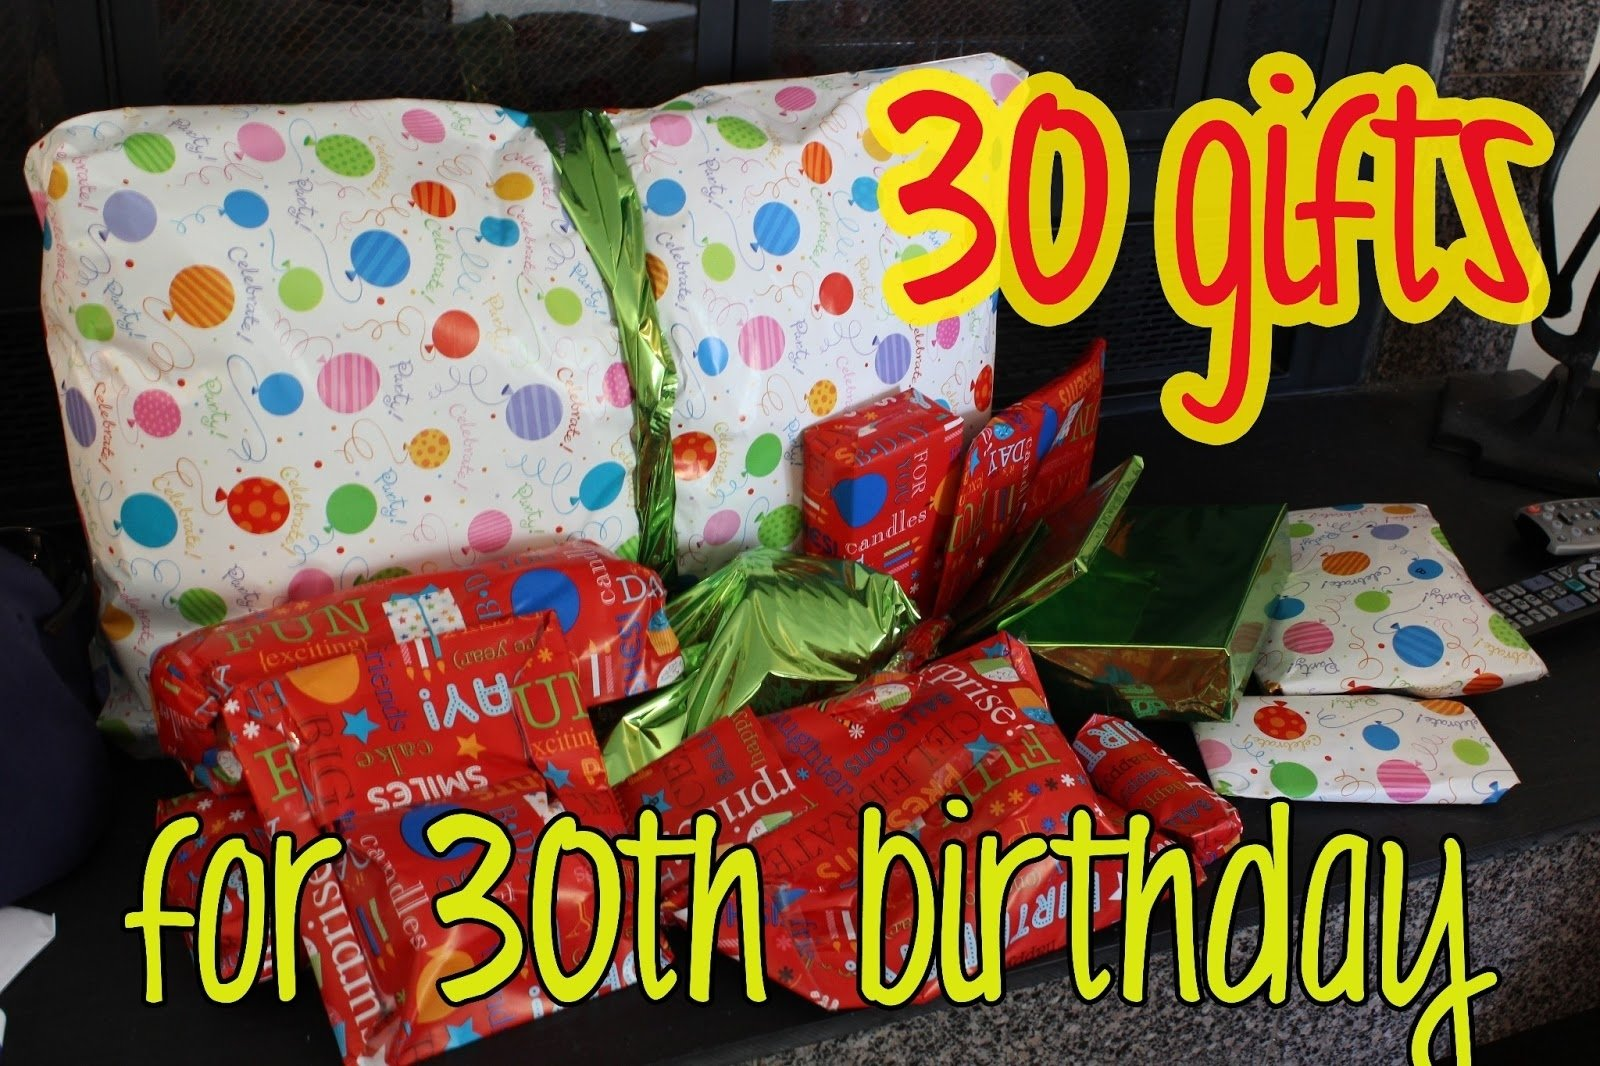 10 Amazing 30 Year Old Birthday Gift Ideas Love Elizabethany Idea Gifts For 30th